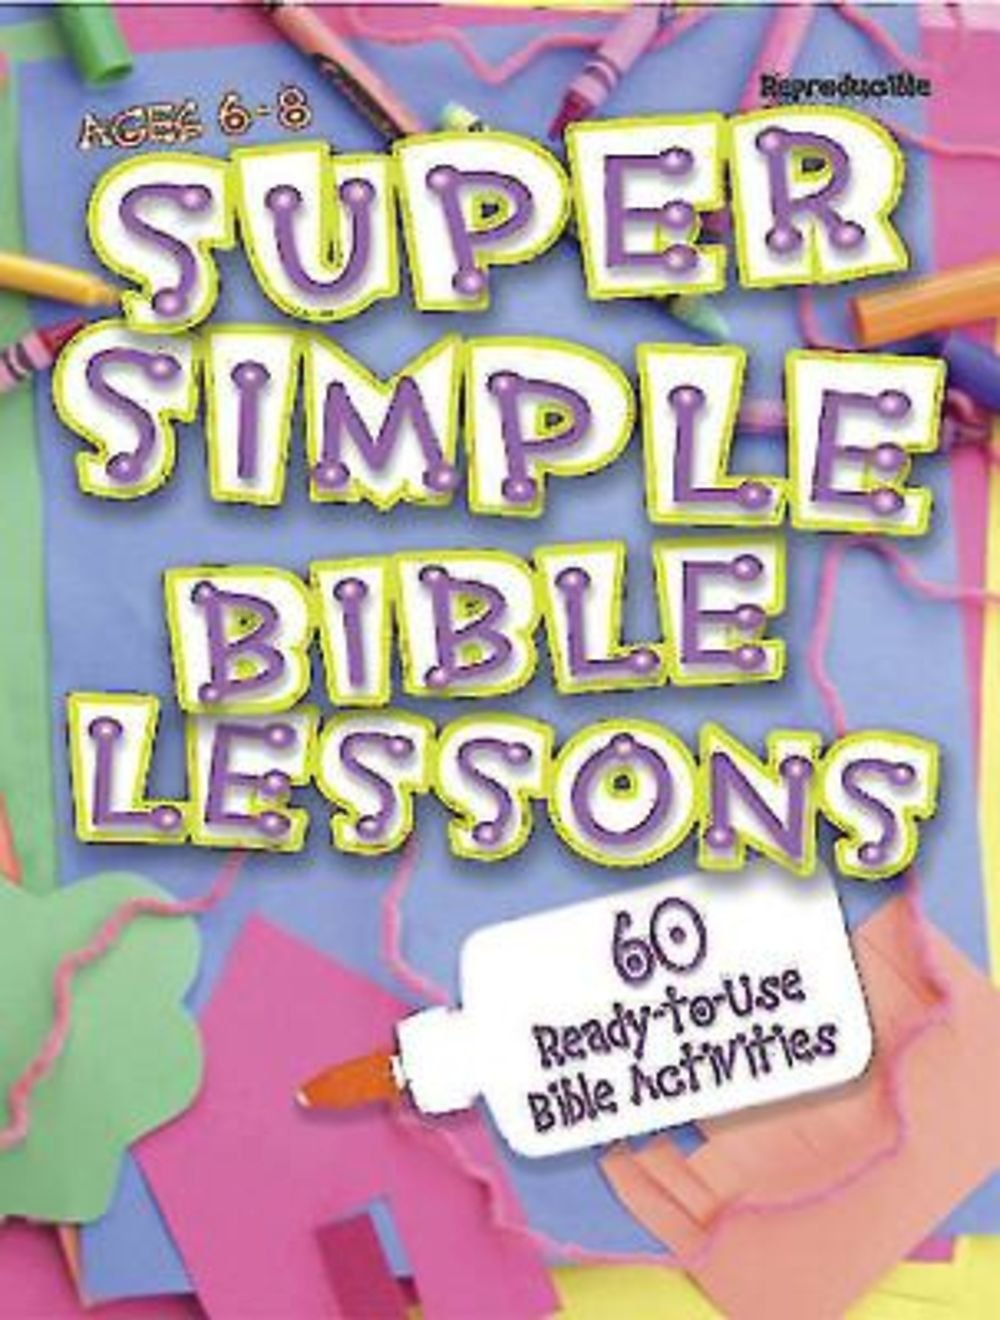 Download Super Simple Bible Lessons (Ages 6-8): 60 Ready-To-Use Bible Activities for Ages 6-8 PDF